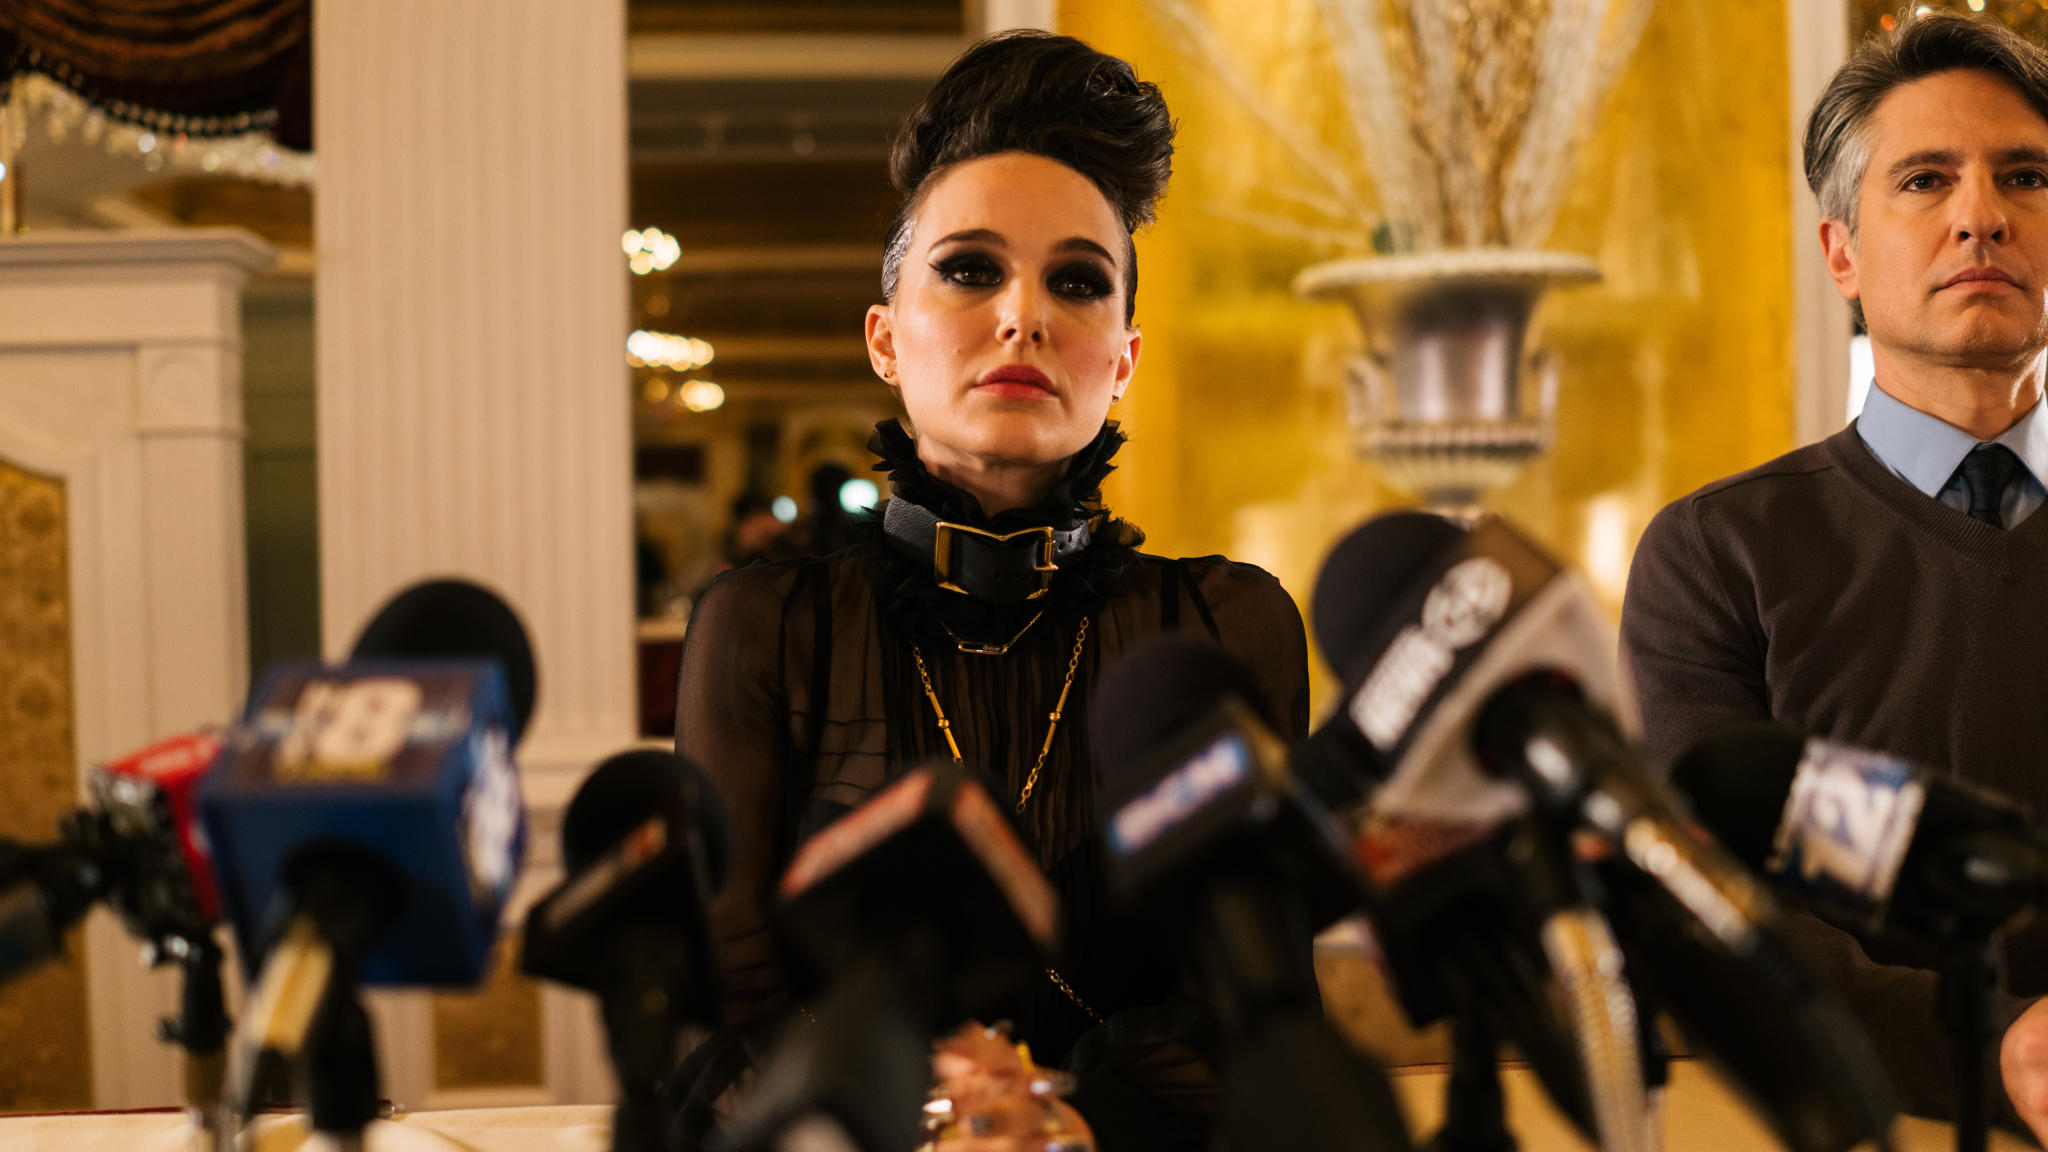 New Vox Lux Stills